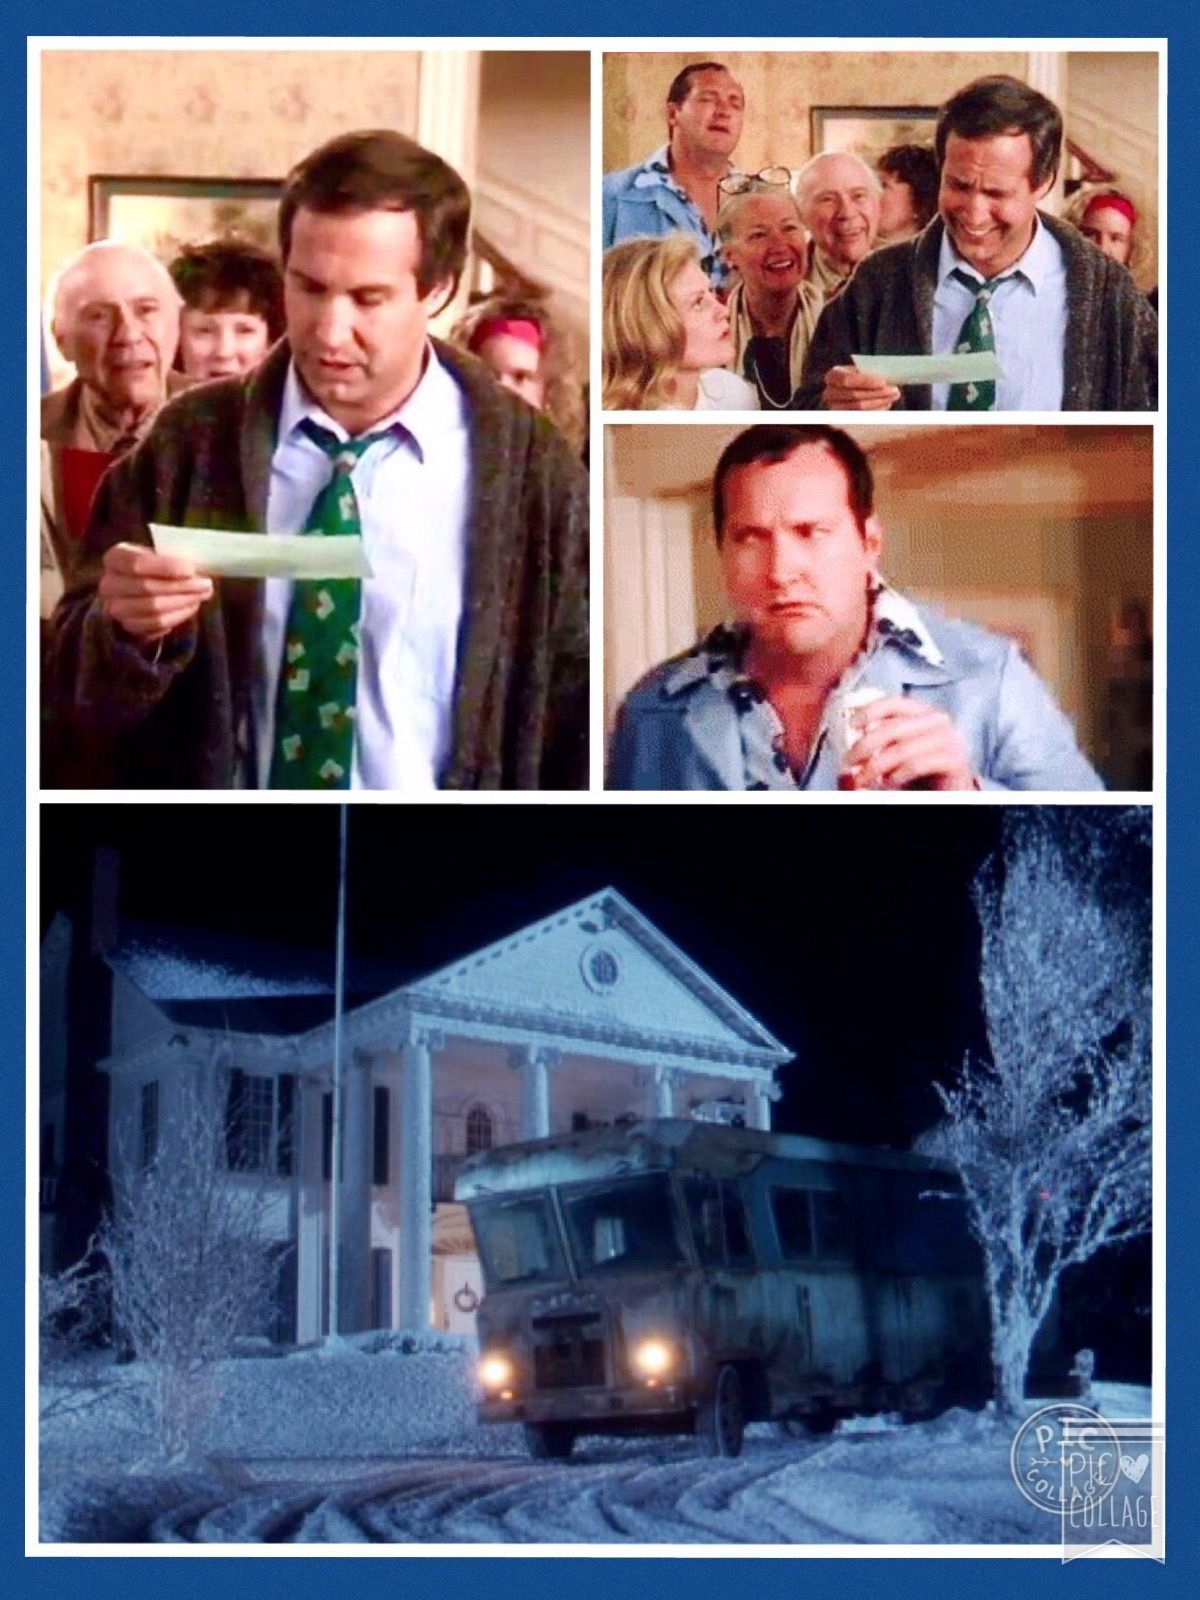 Christmas Vacation Boss Gift.Christmas Vacation 1989 Jelly Of The Month Club If Any